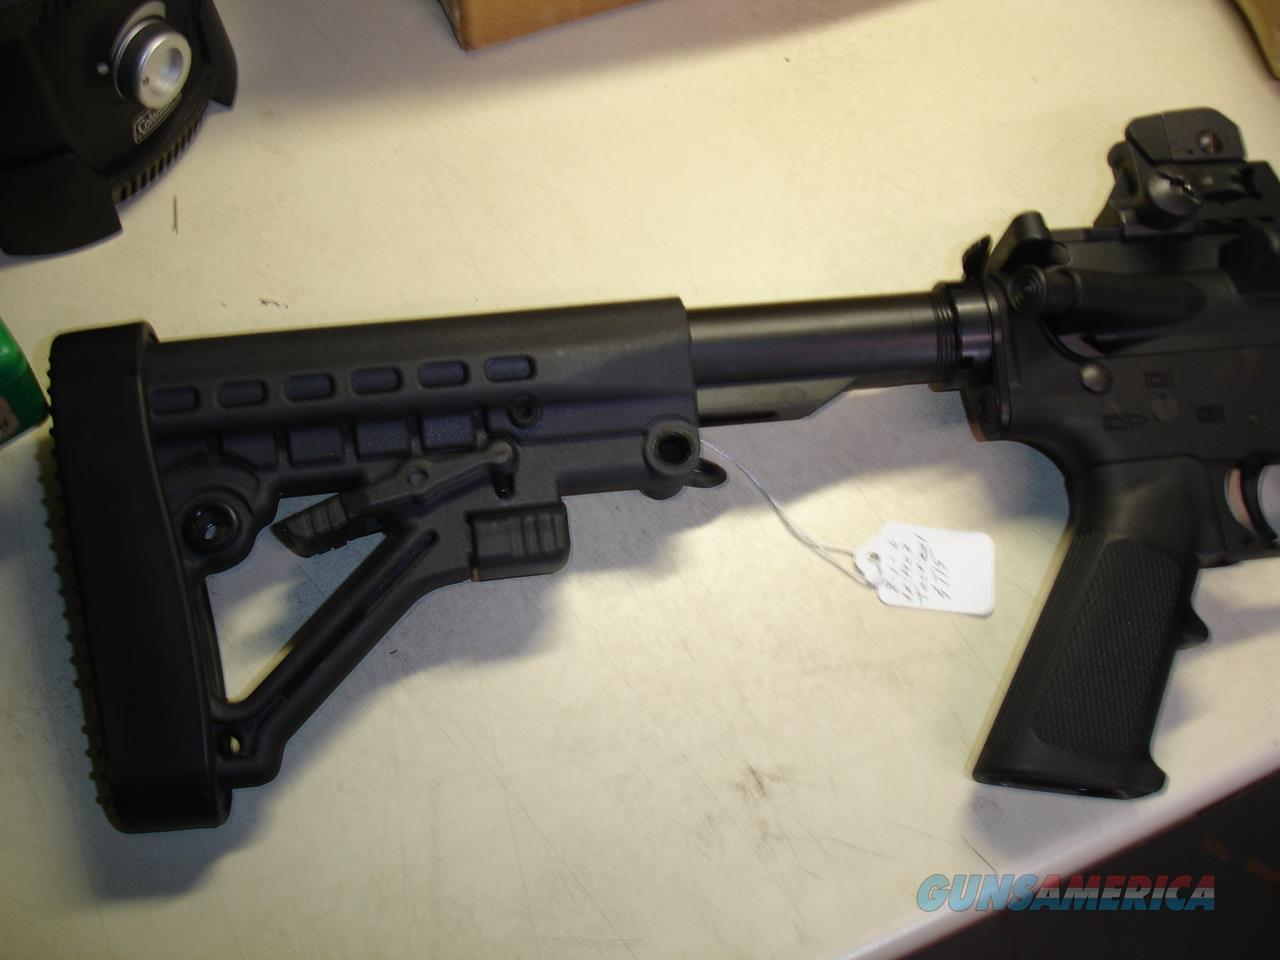 SPIKE'S TACTICAL   Guns > Rifles > AR-15 Rifles - Small Manufacturers > Complete Rifle